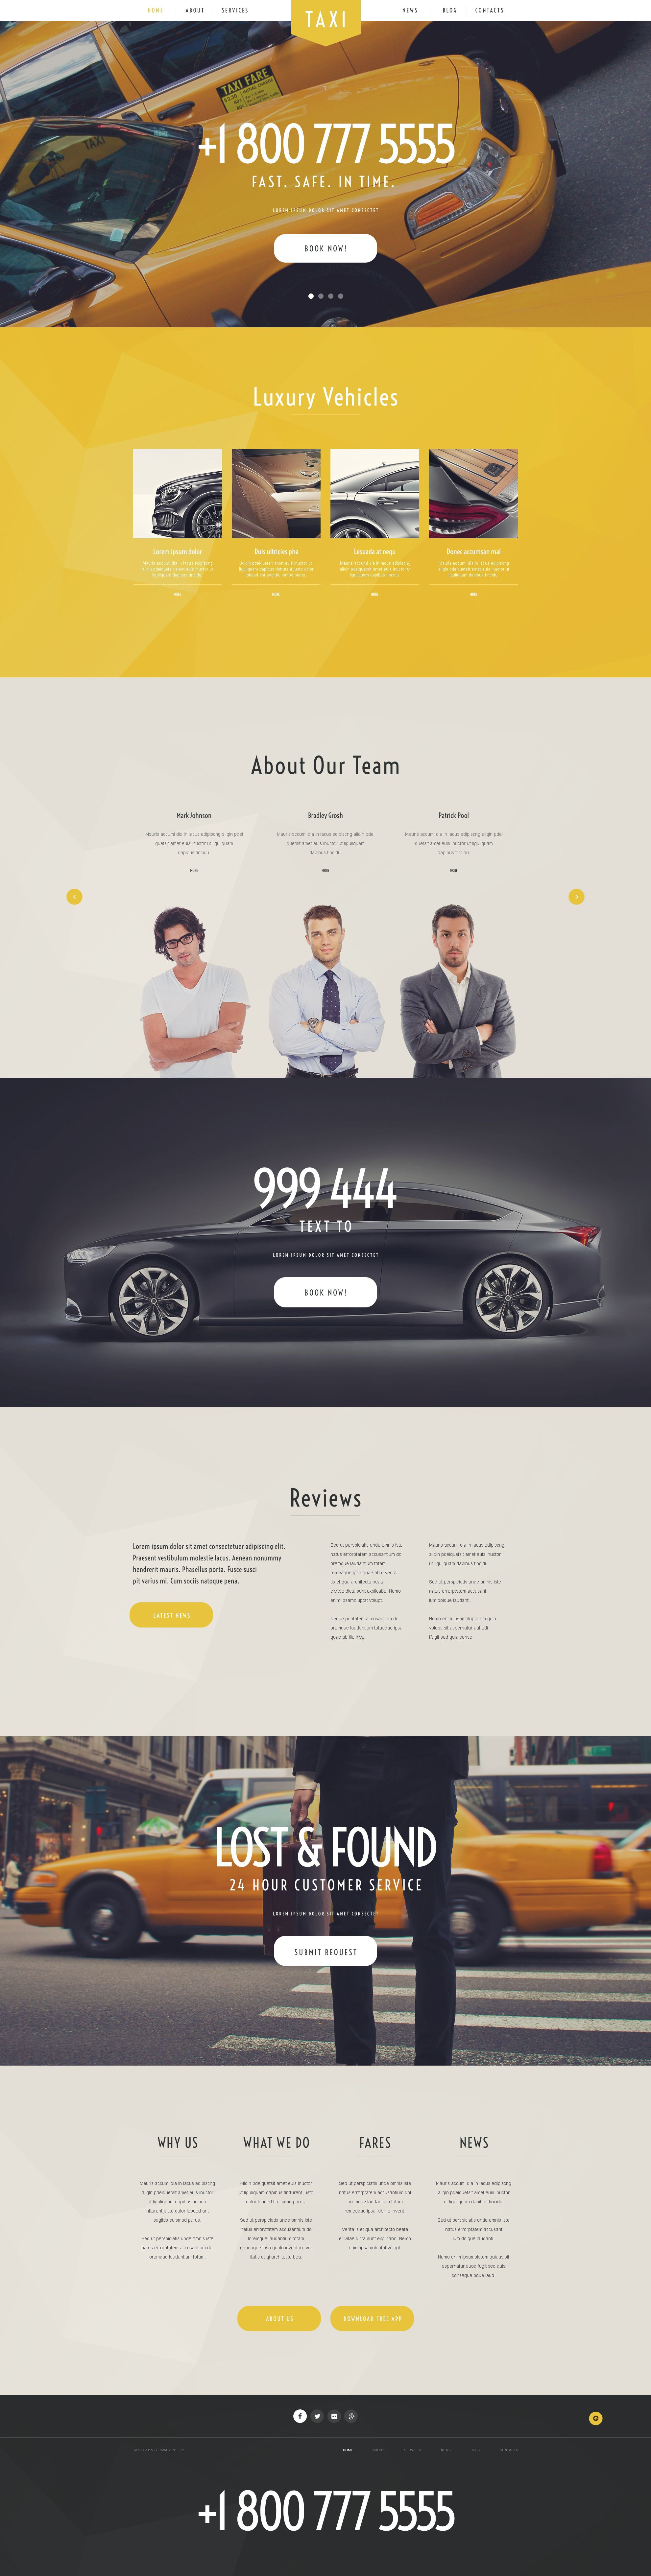 Taxi Services WordPress Theme - screenshot